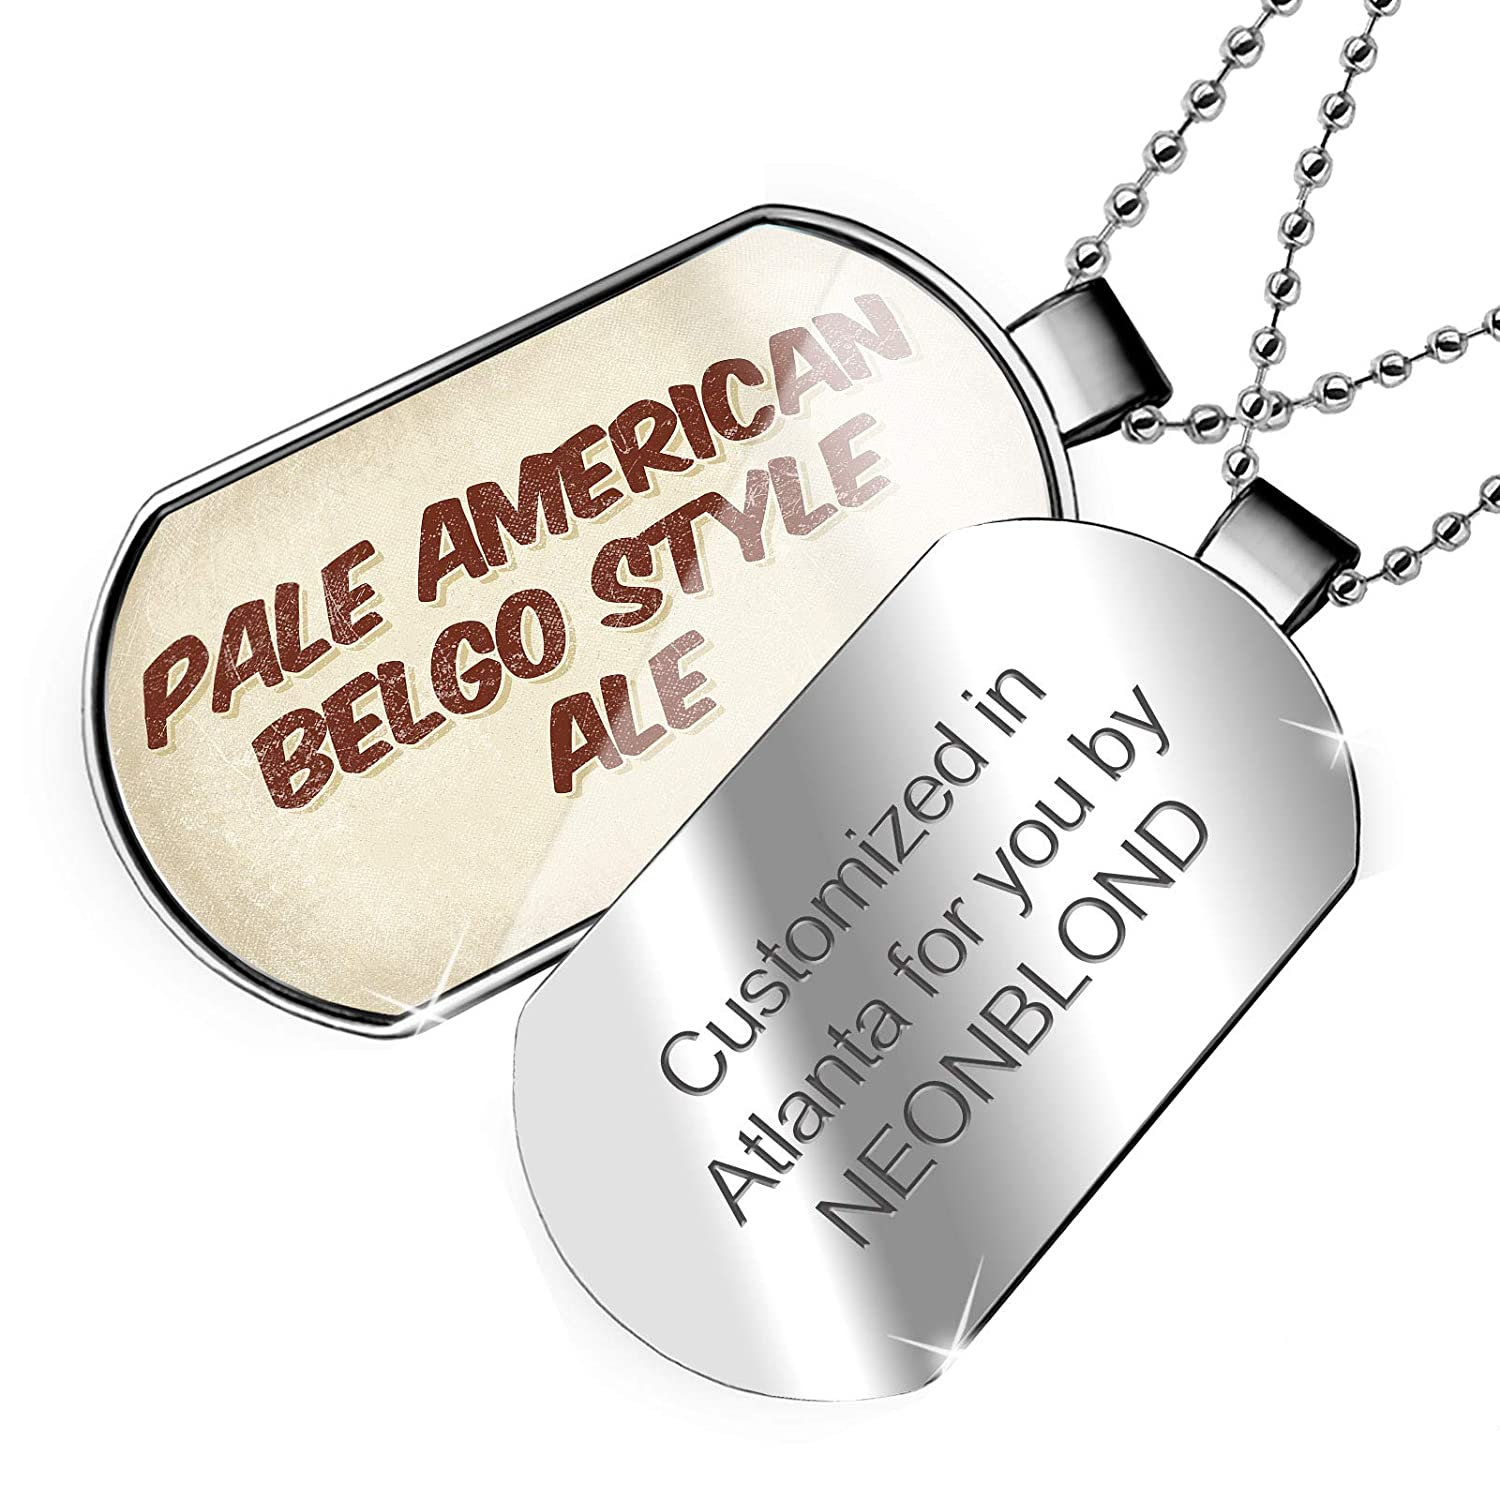 Vintage Style Dogtag Necklace NEONBLOND Personalized Name Engraved Pale American Belgo Style Ale Beer